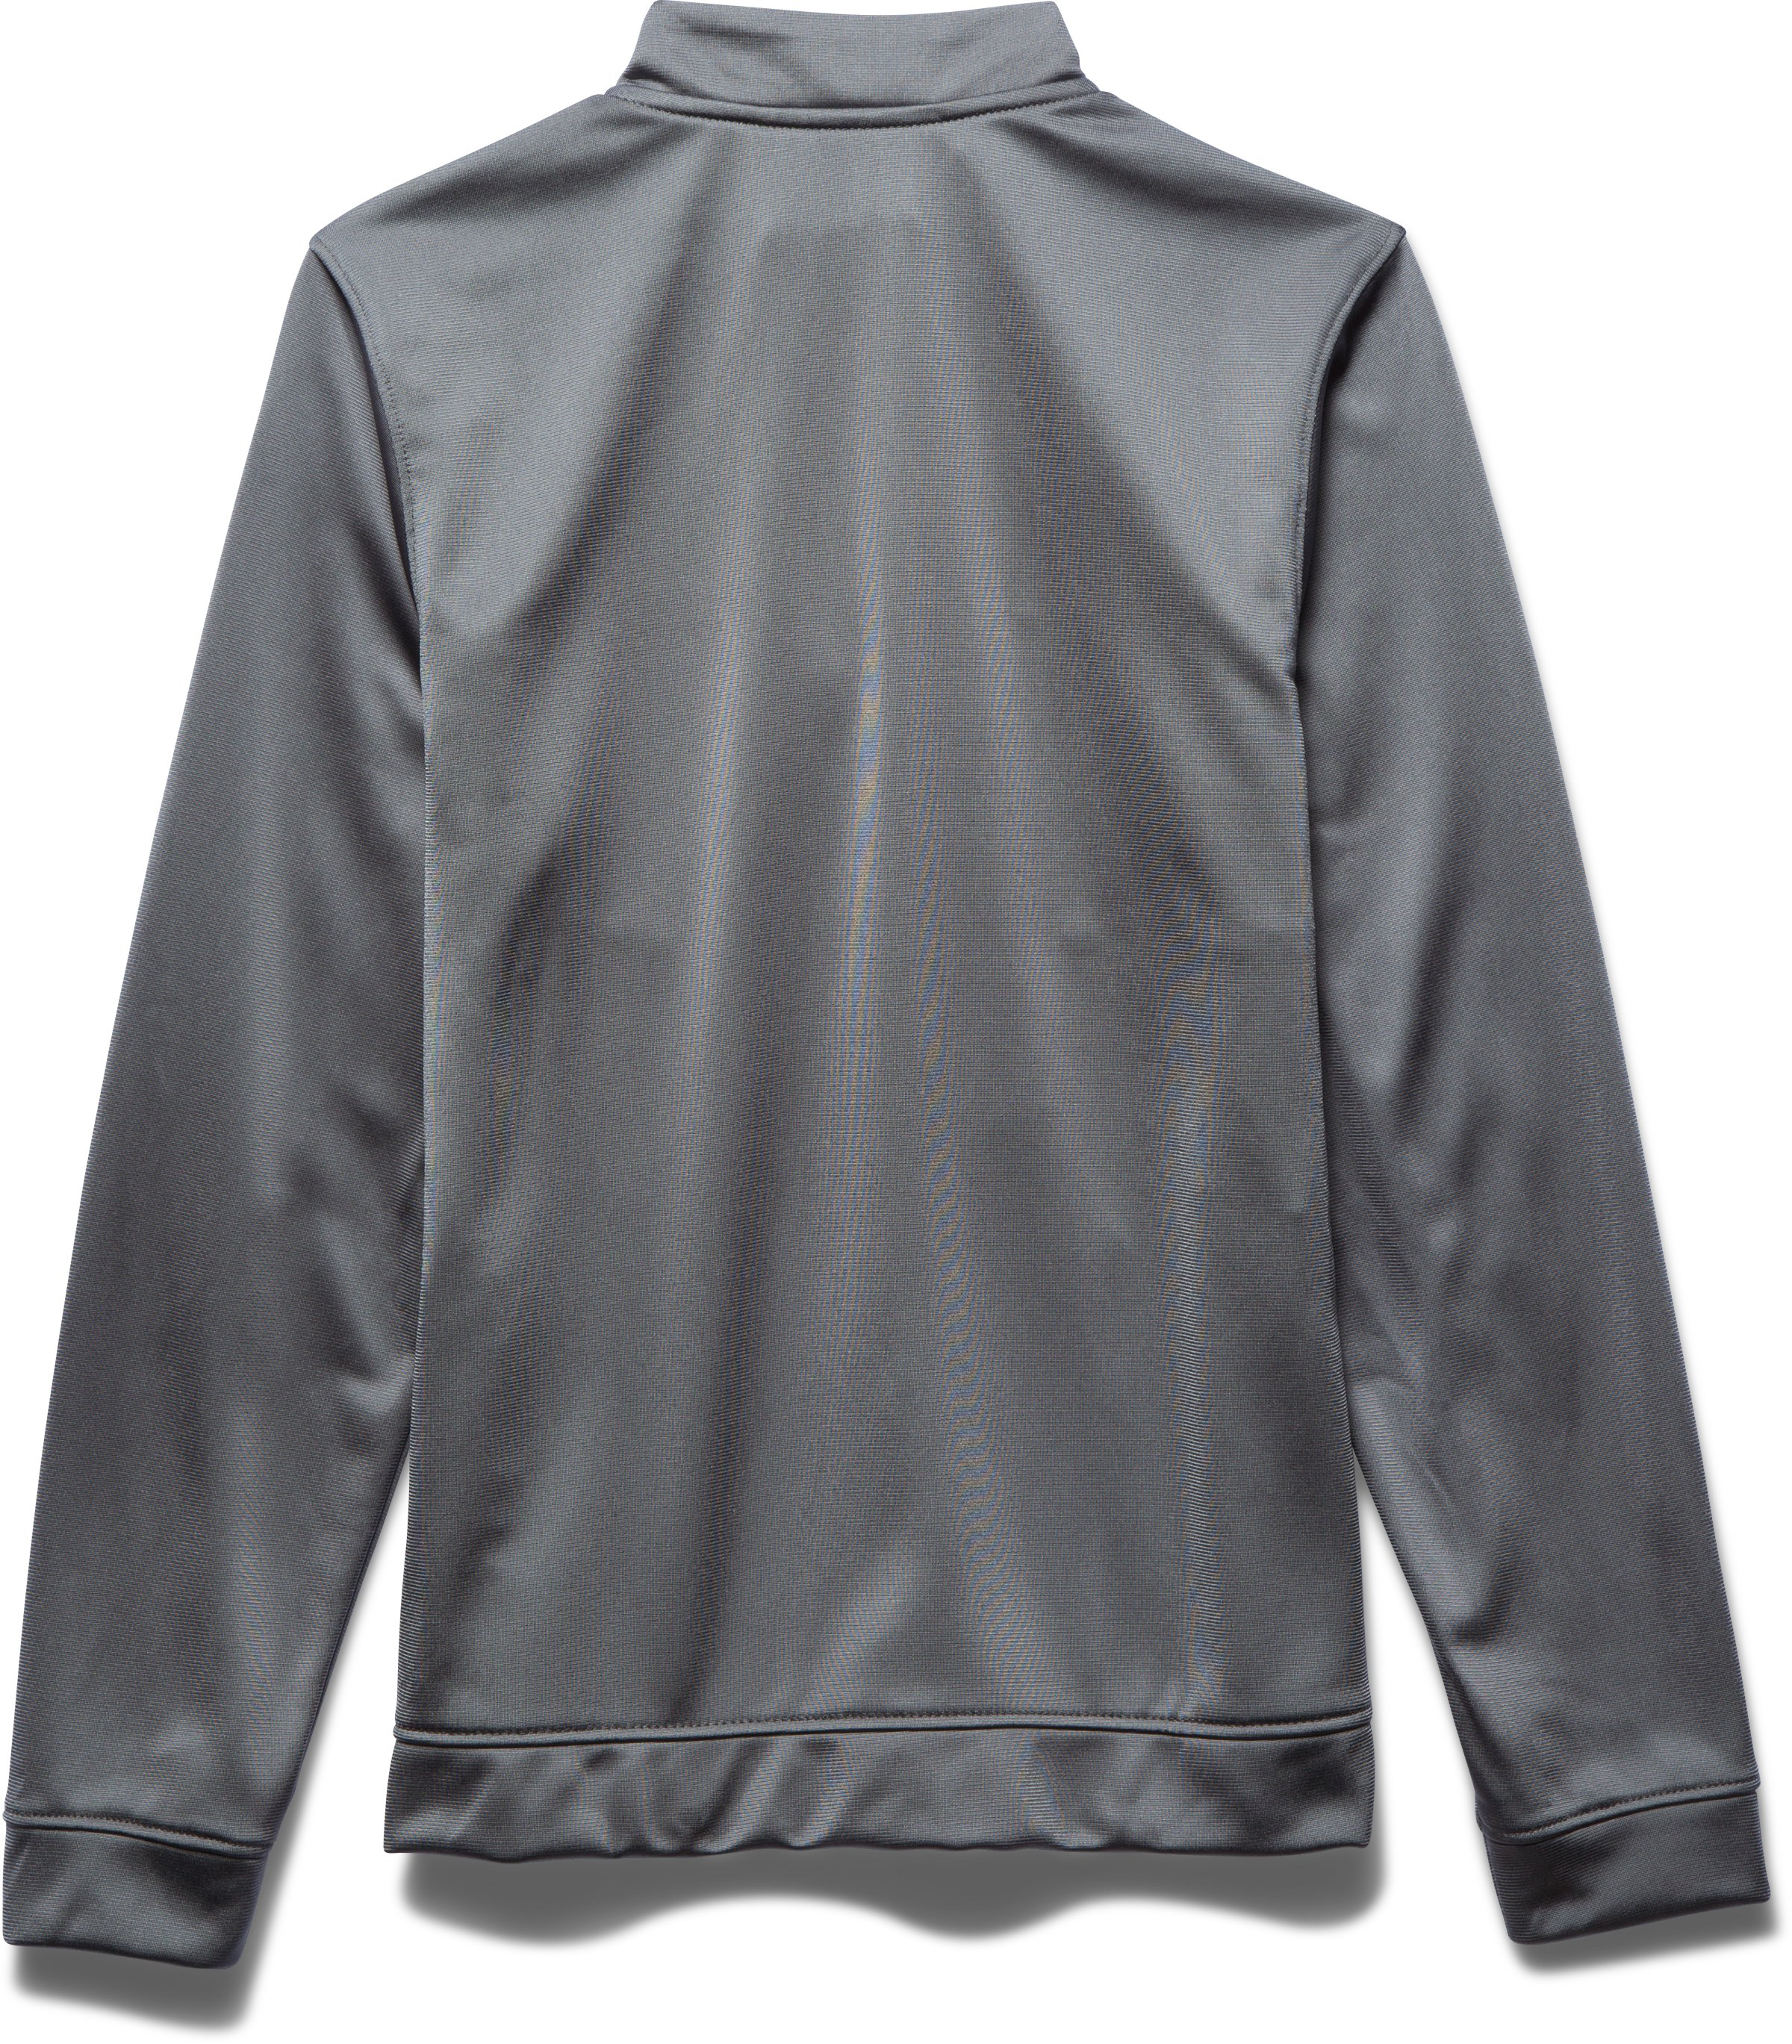 Boys' UA Rival Knit Warm Up Jacket, Graphite,